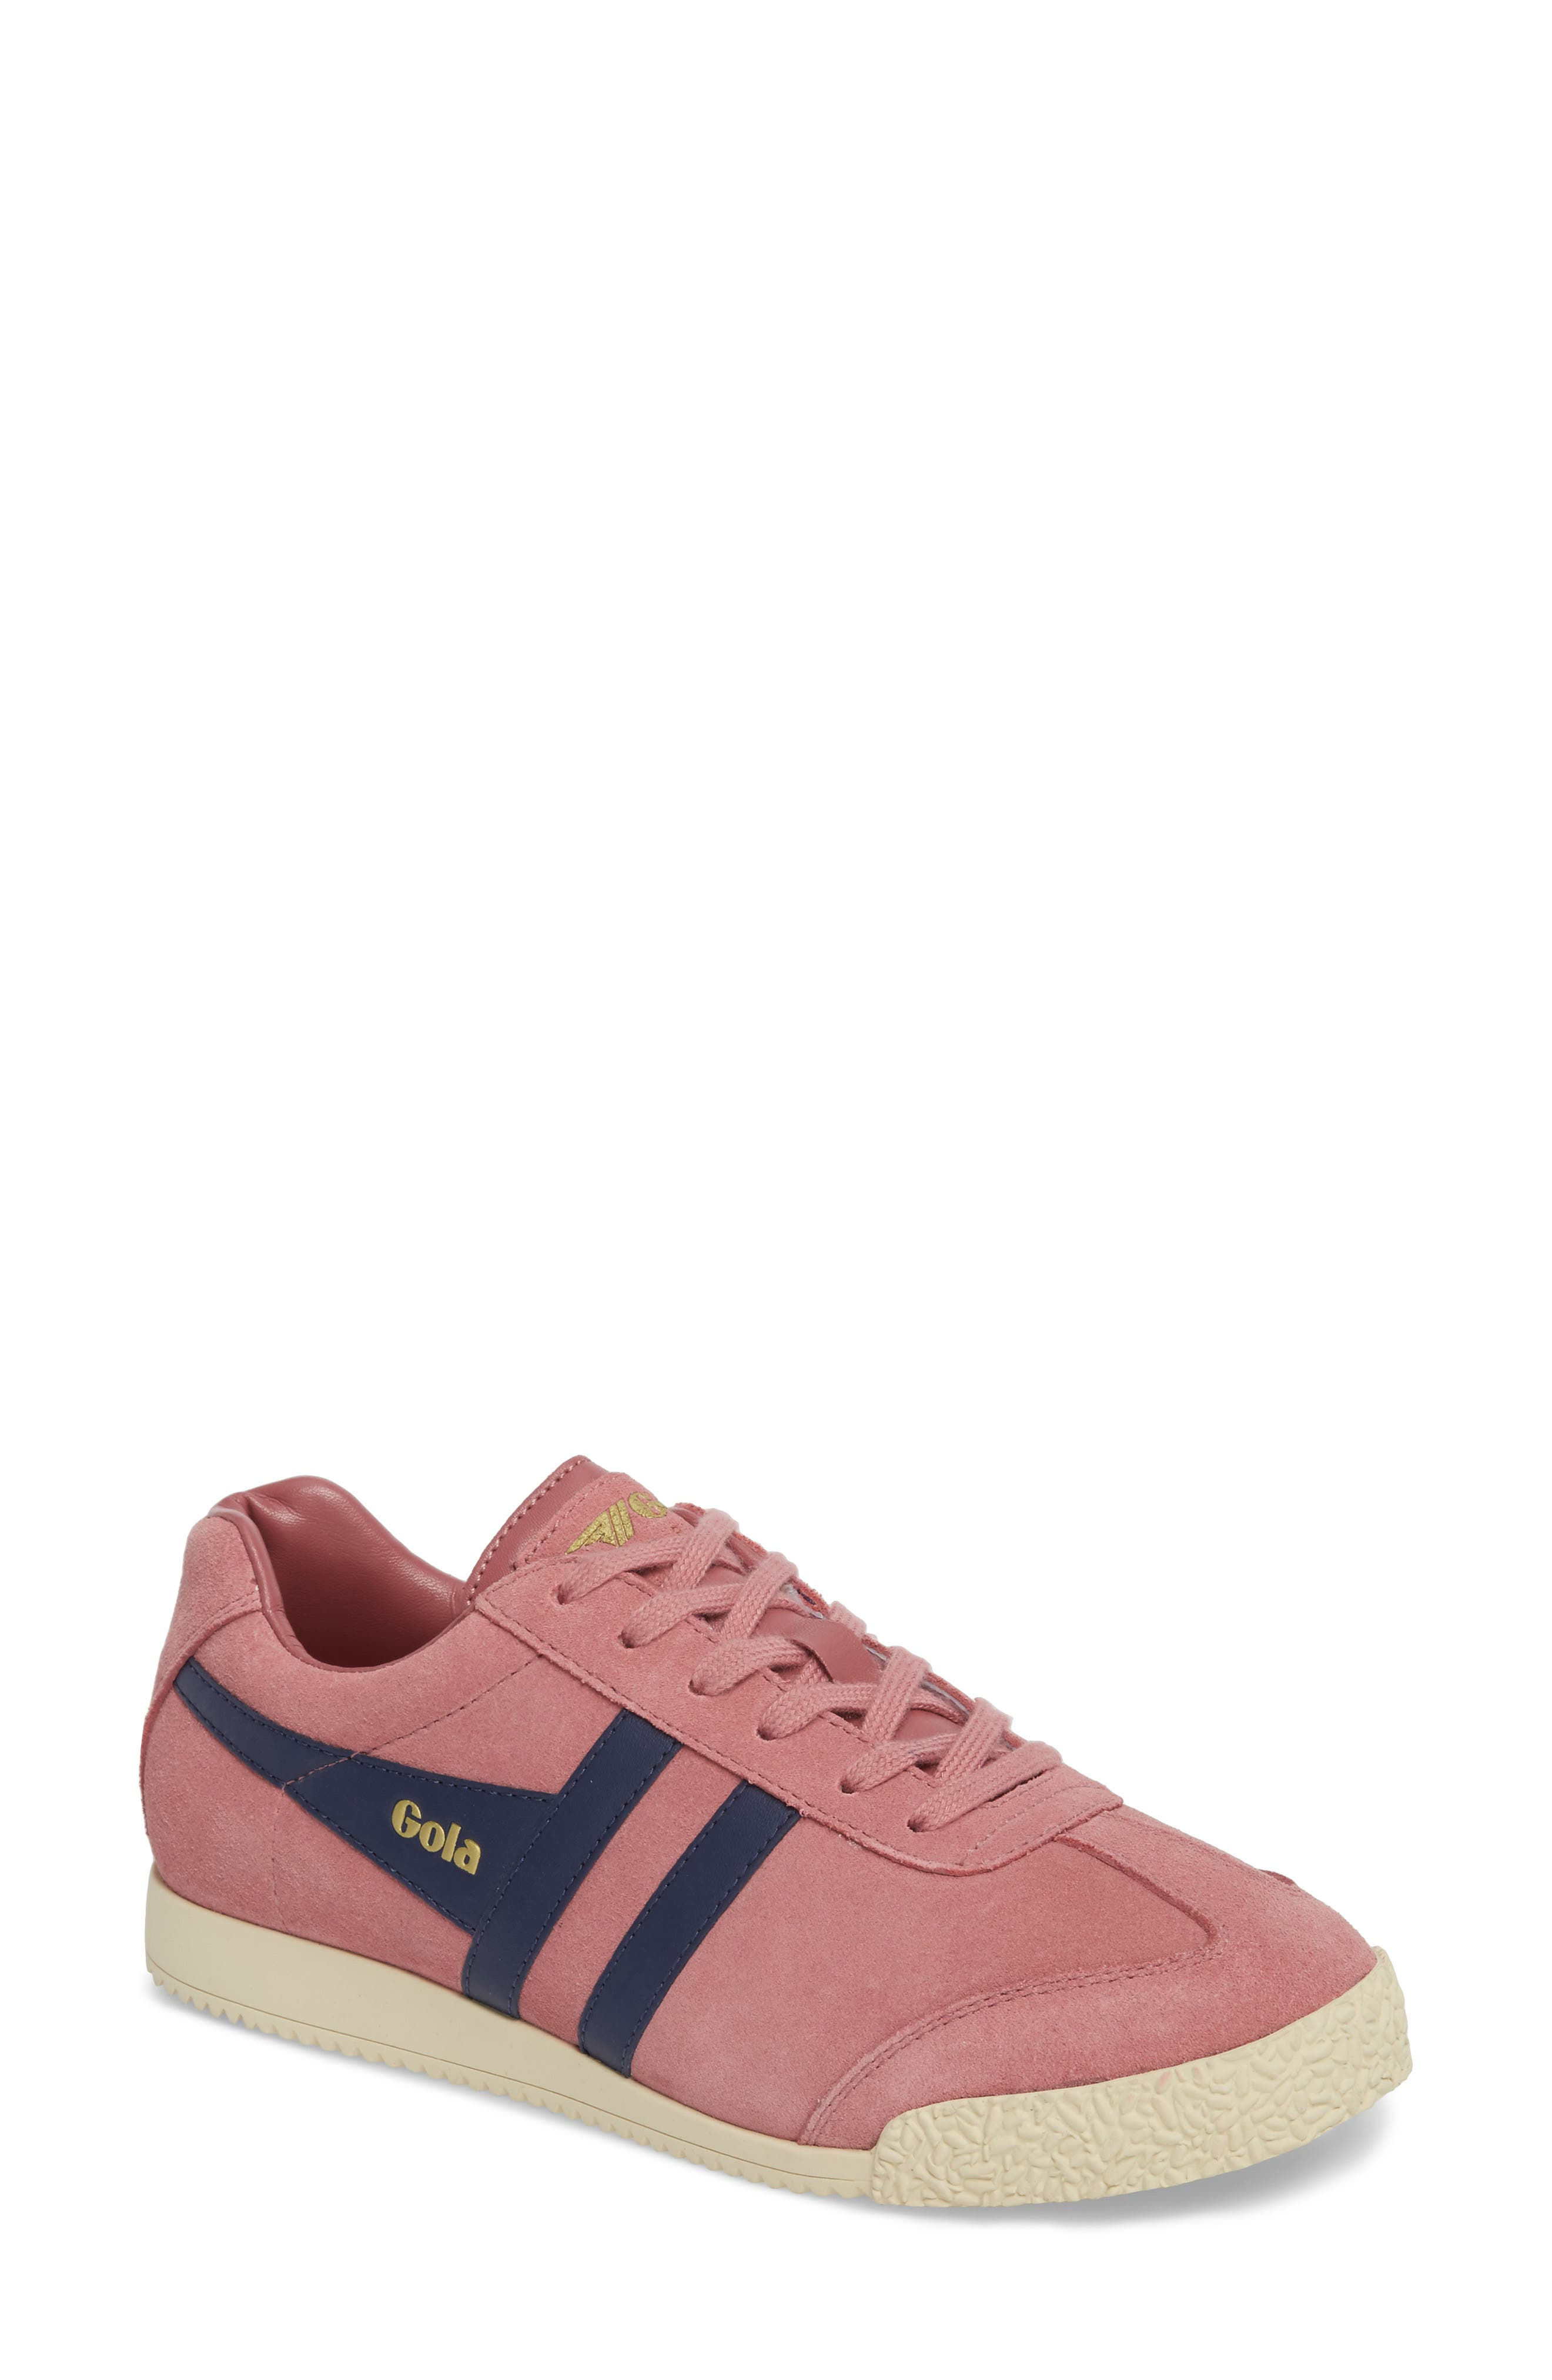 Harrier Suede Low Top Sneaker,                             Main thumbnail 1, color,                             Dusty Rose/ Navy